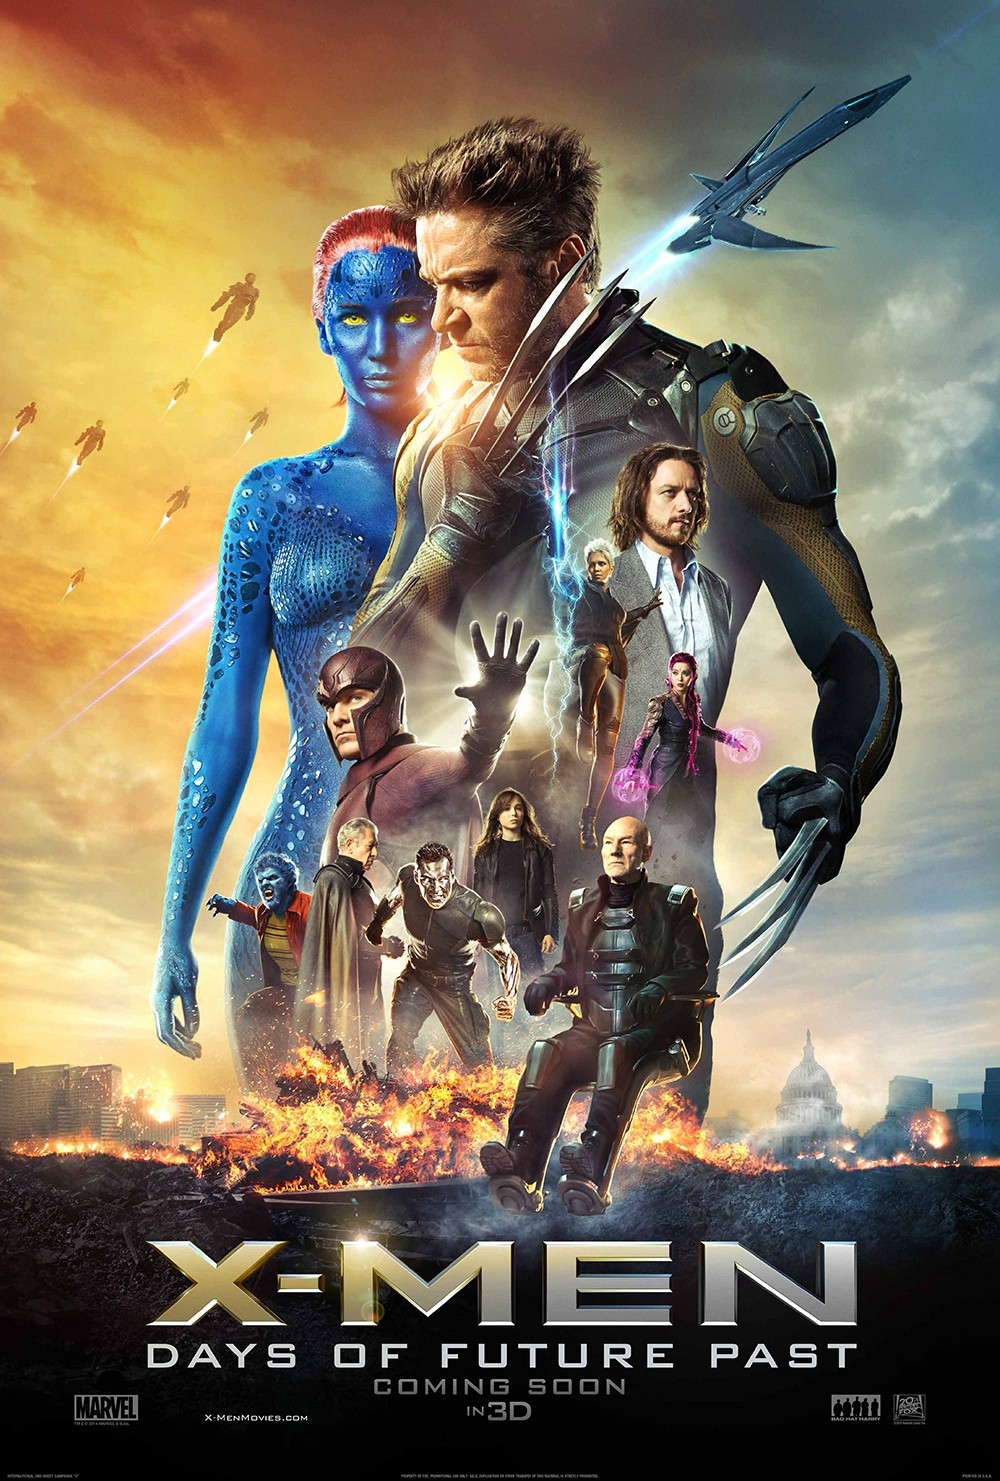 X-MEN DAYS OF FUTURE PAST-Official Poster Banner PROMO XLG-24MARCO2014